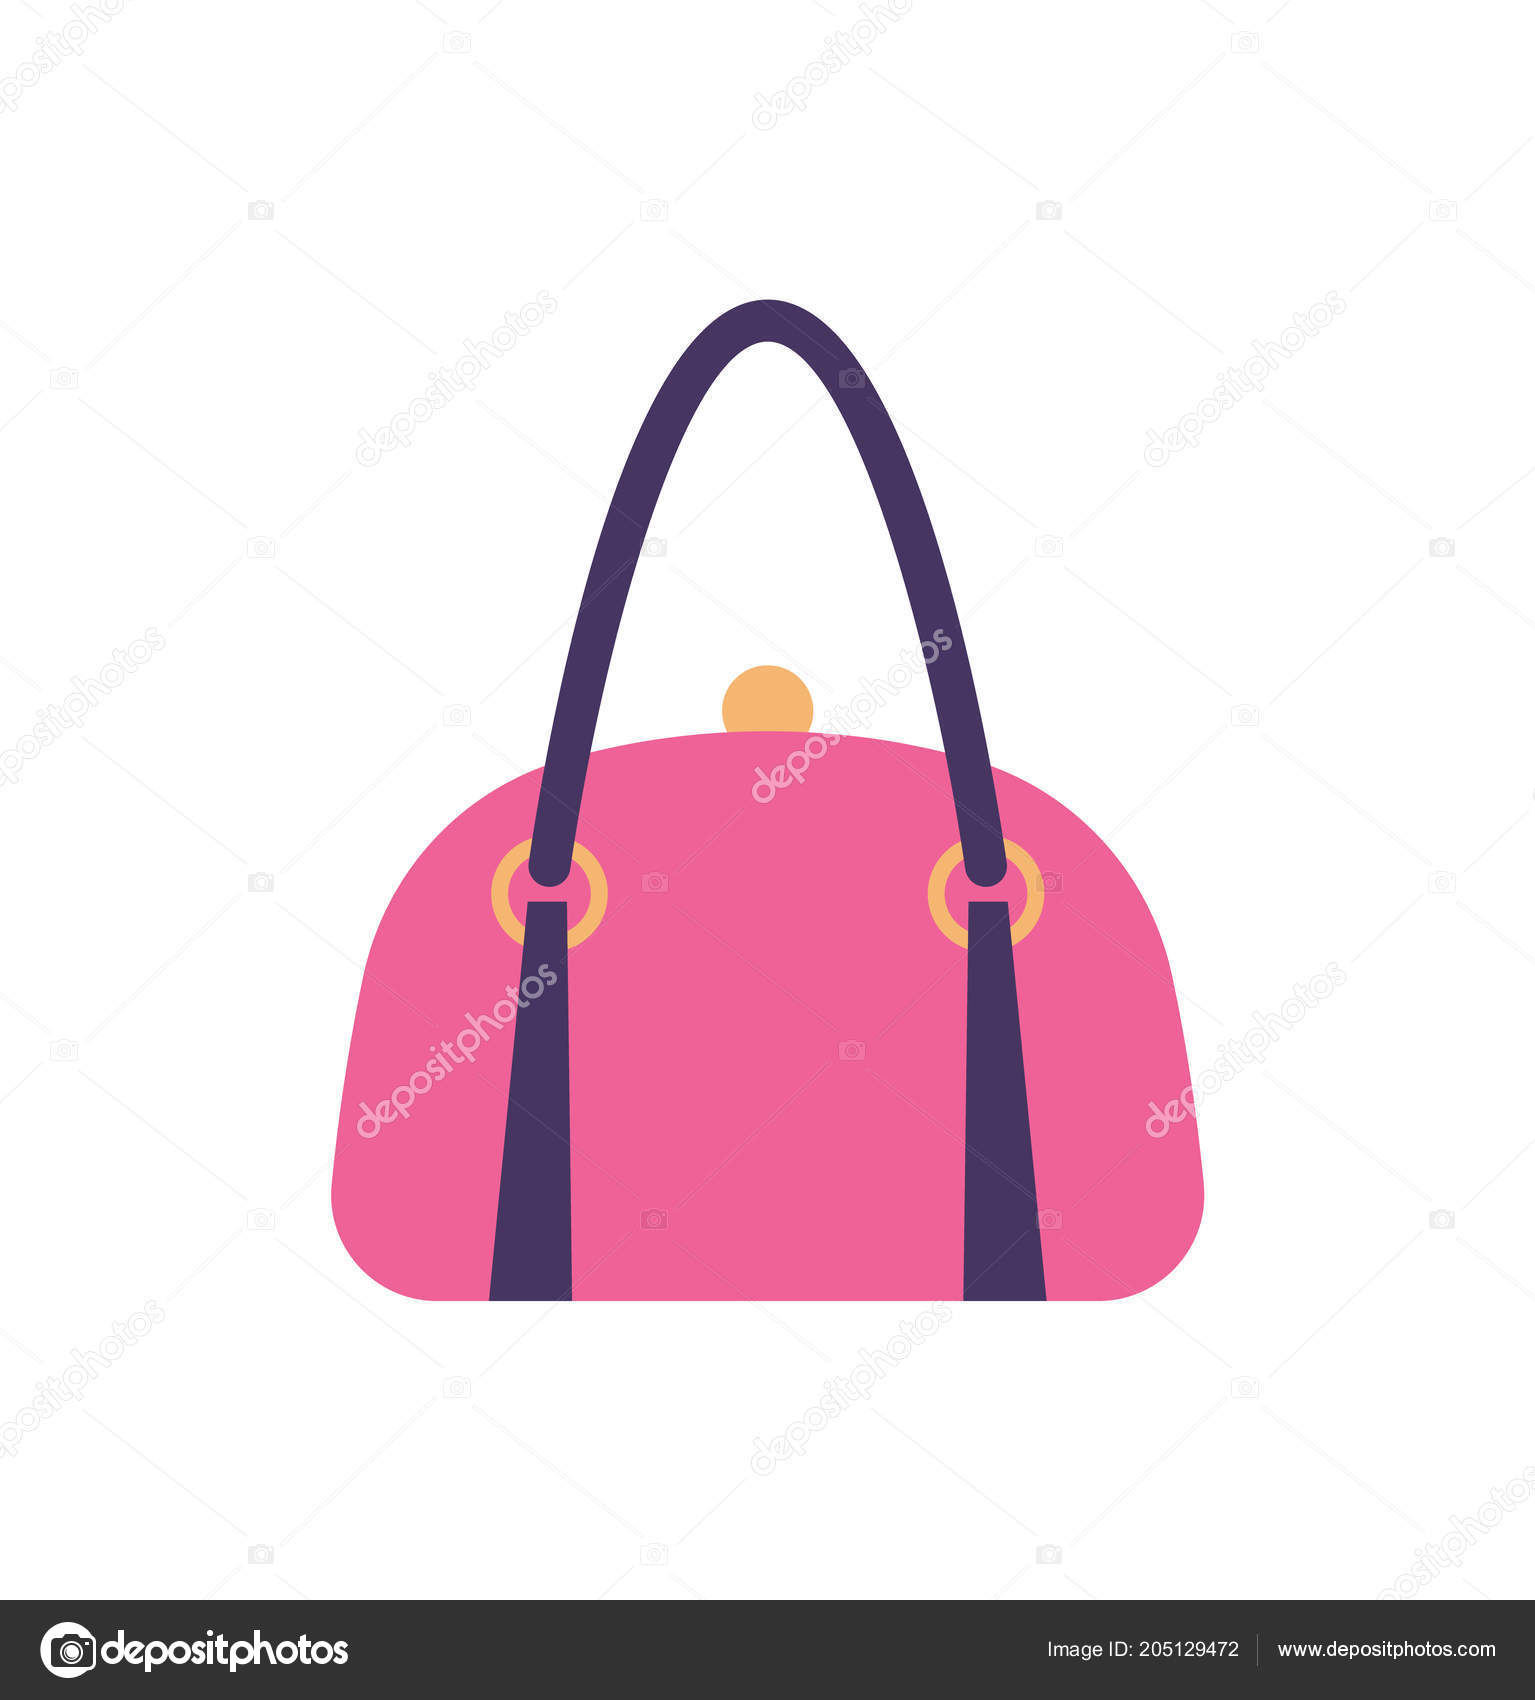 d9e2ca346b Women pink leather handbag with black handle and clips vector illustration  isolated on white. Casual bag accessory for girls